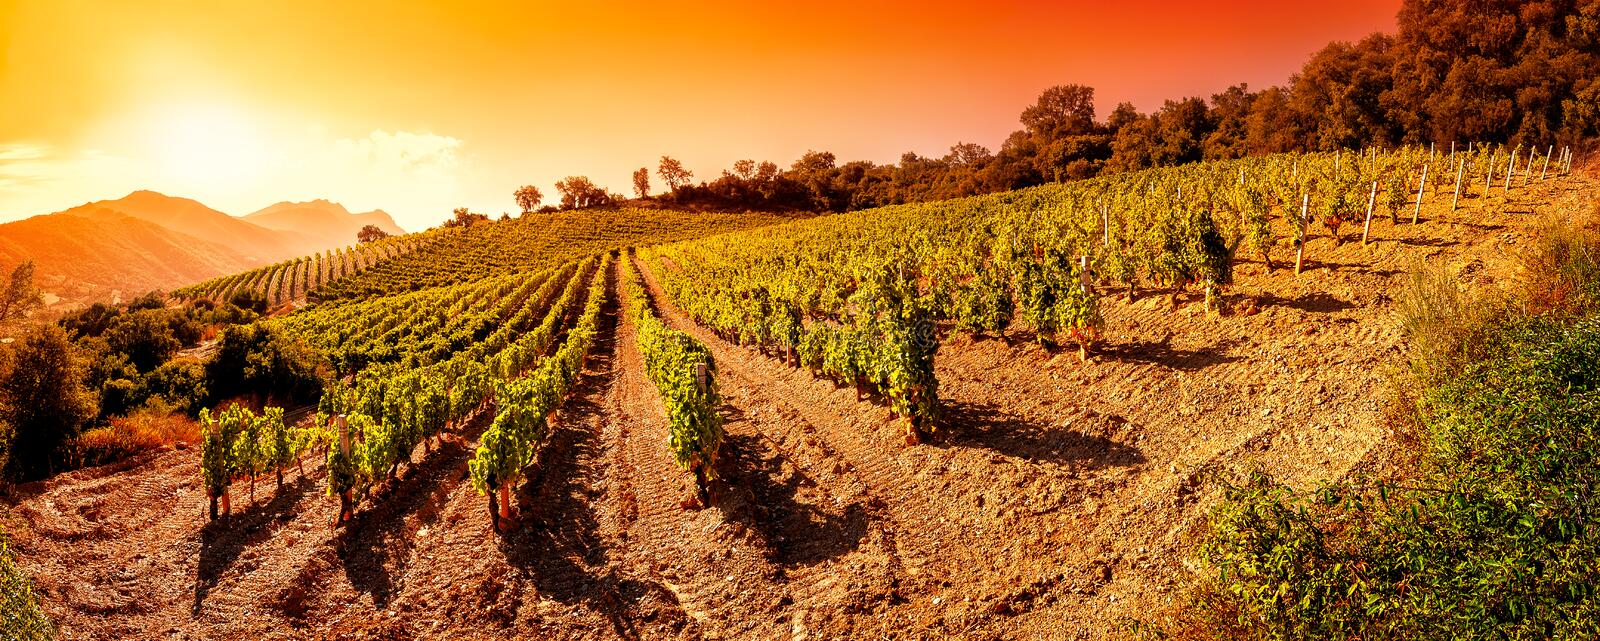 Sunrise on a hillside vineyard in Sardinia royalty free stock image